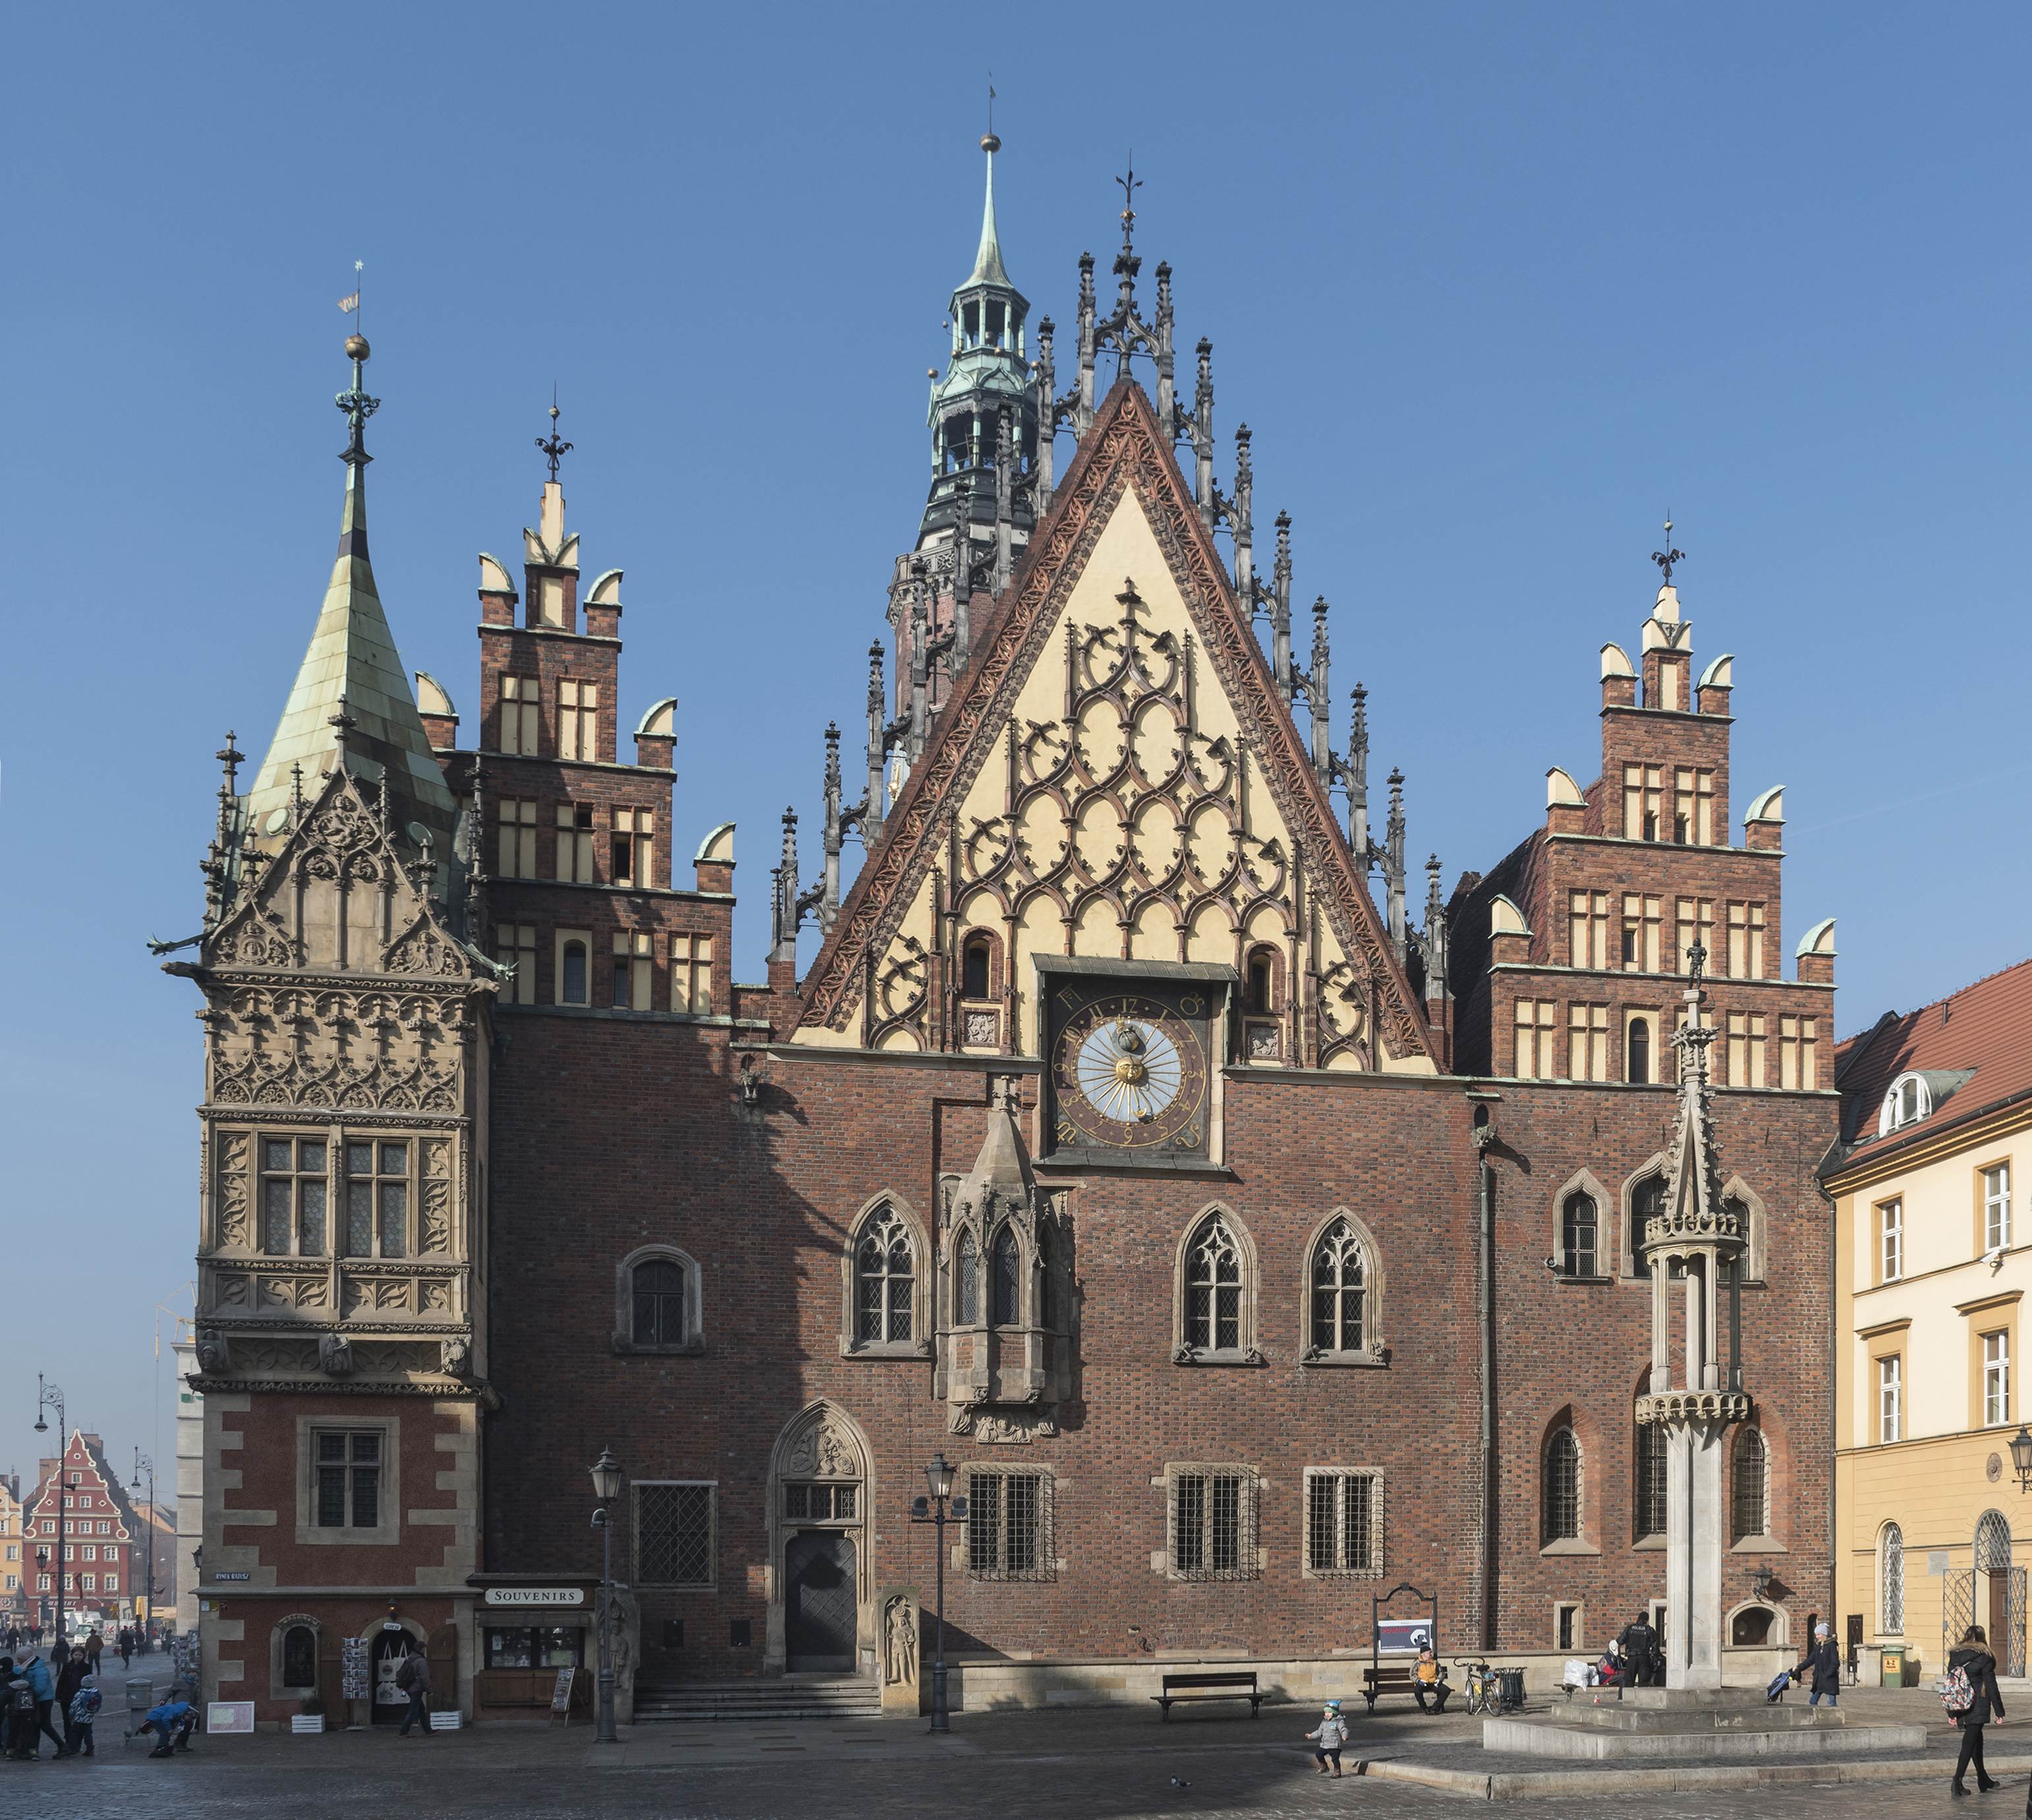 Gothic Town Hall of Wrocław